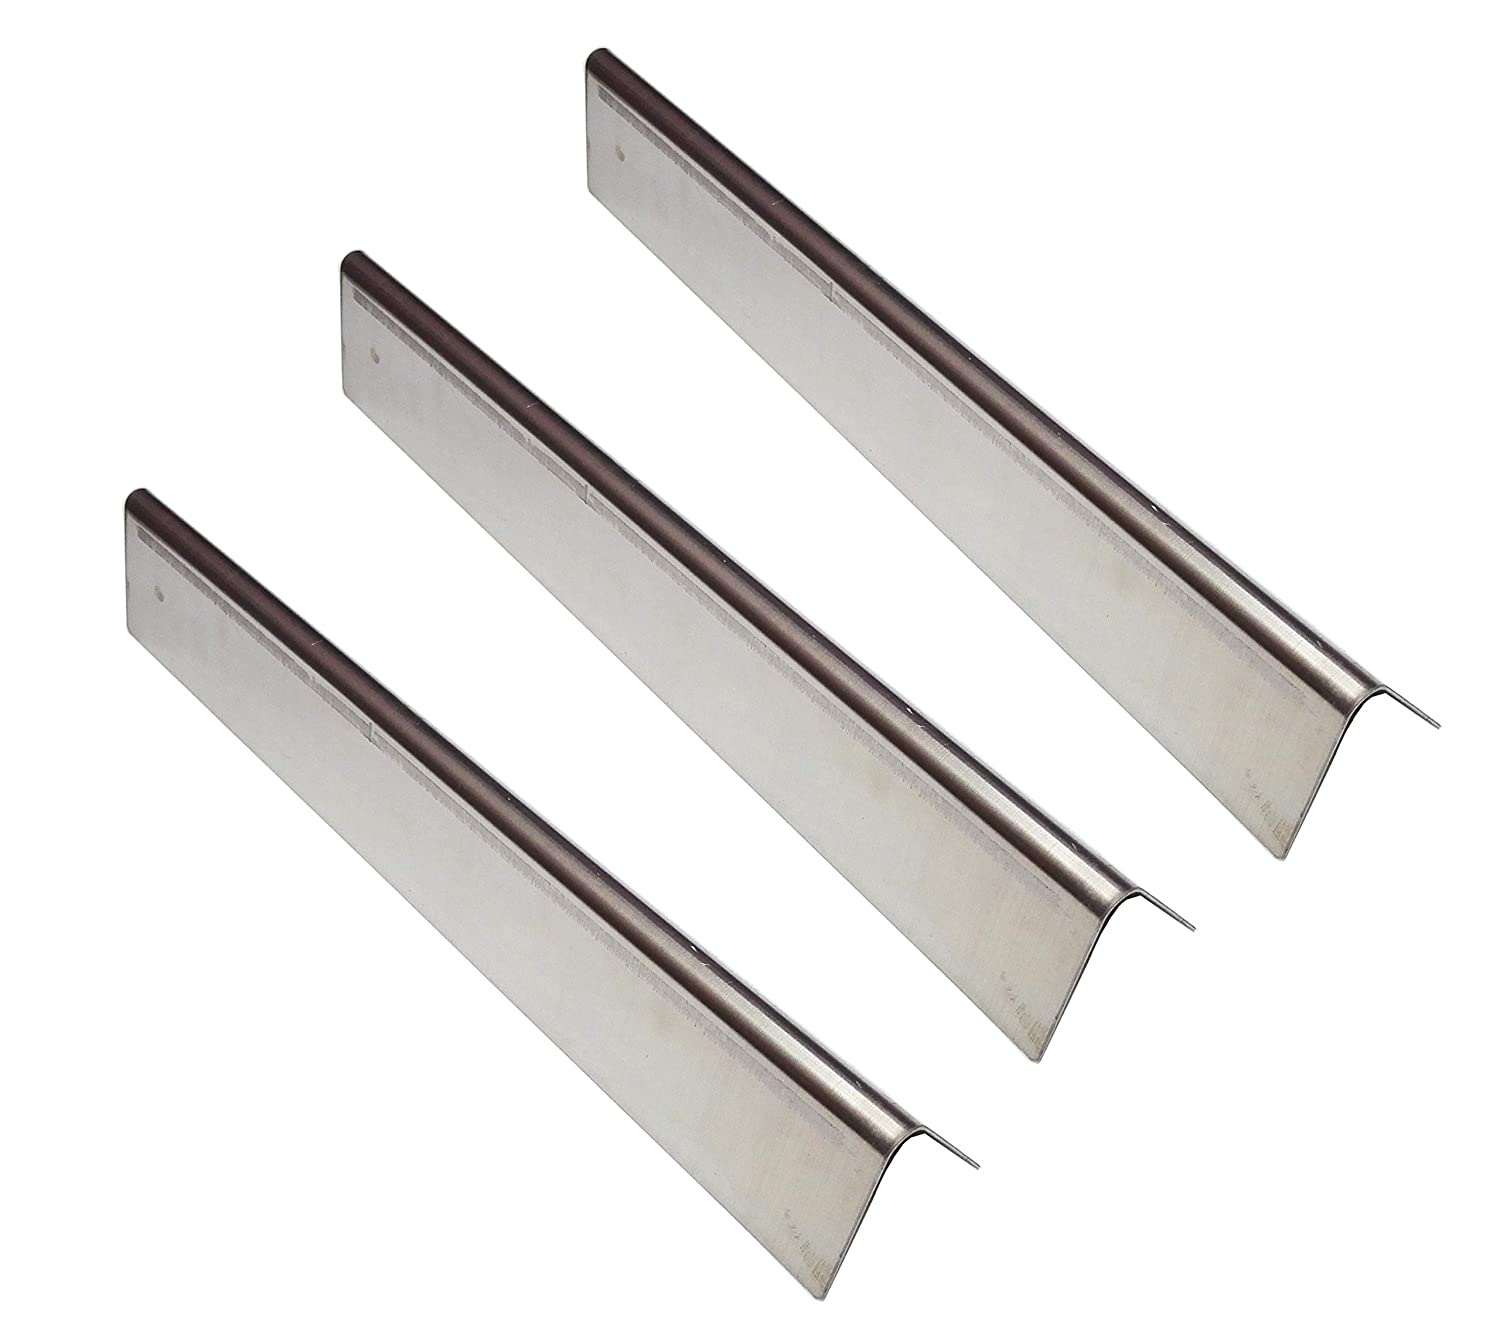 """Replace parts Stainless Steel Flavorizer Bars (16 Ga.) for Spirit 200 Series, Weber 7635 Gas Grills (Set of 3/15.3"""" x 3.5"""" x 2.5"""")"""